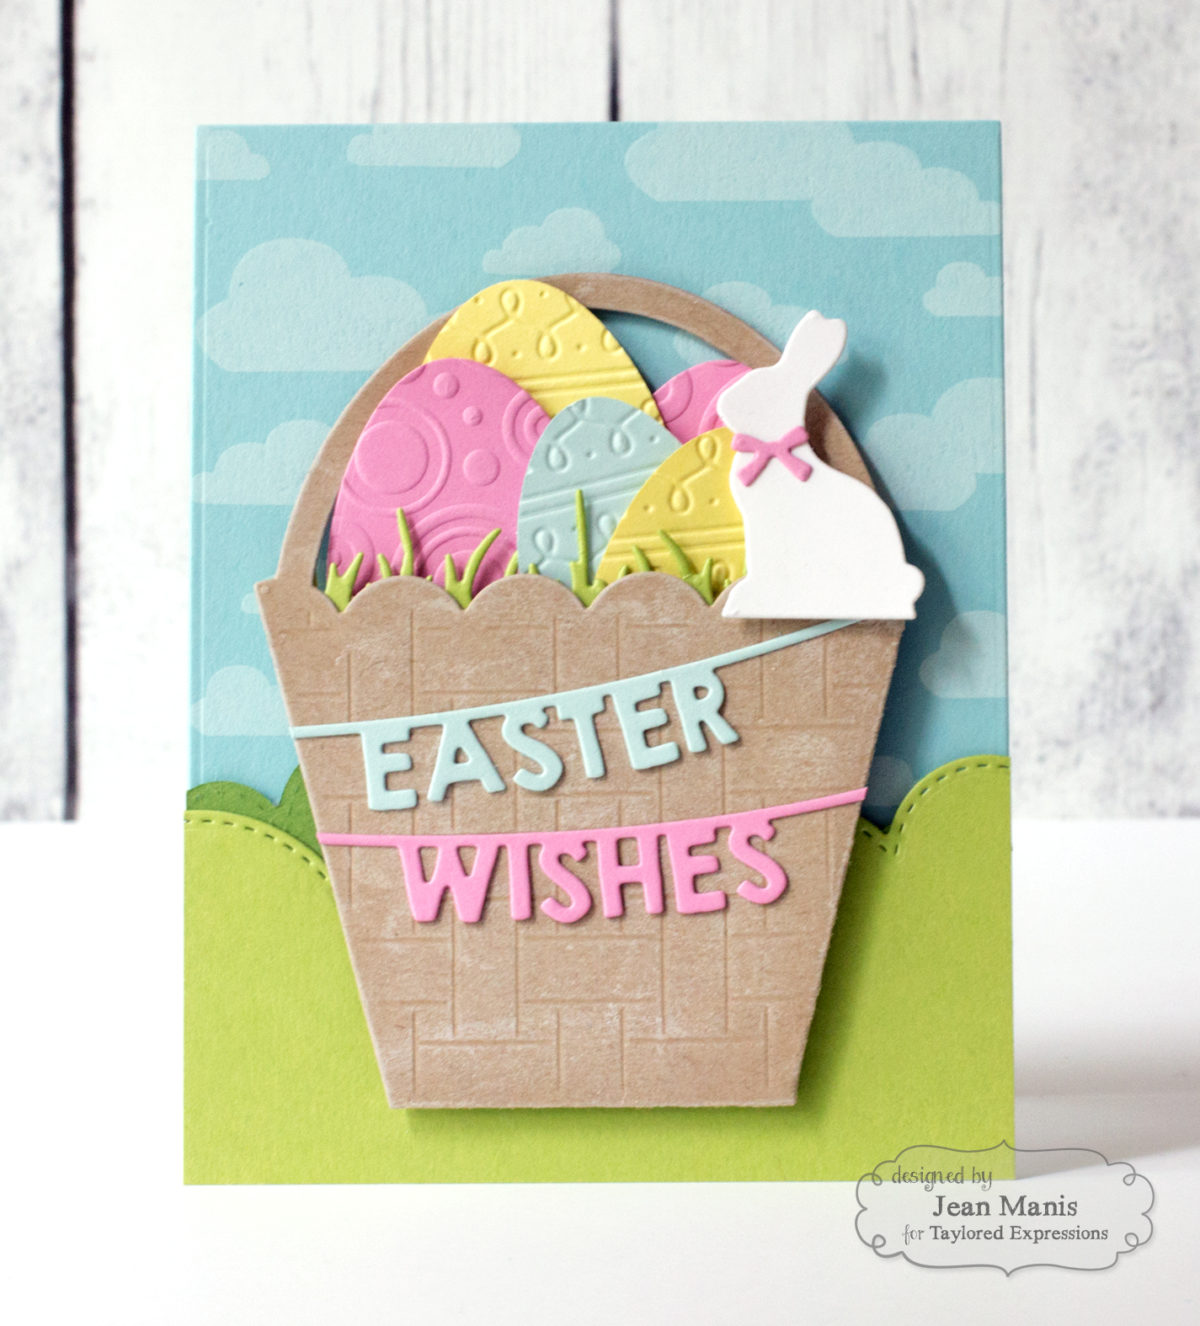 Easter Wishes – Taylored Expressions Feb 2017 Release Sneak Peeks Day Three